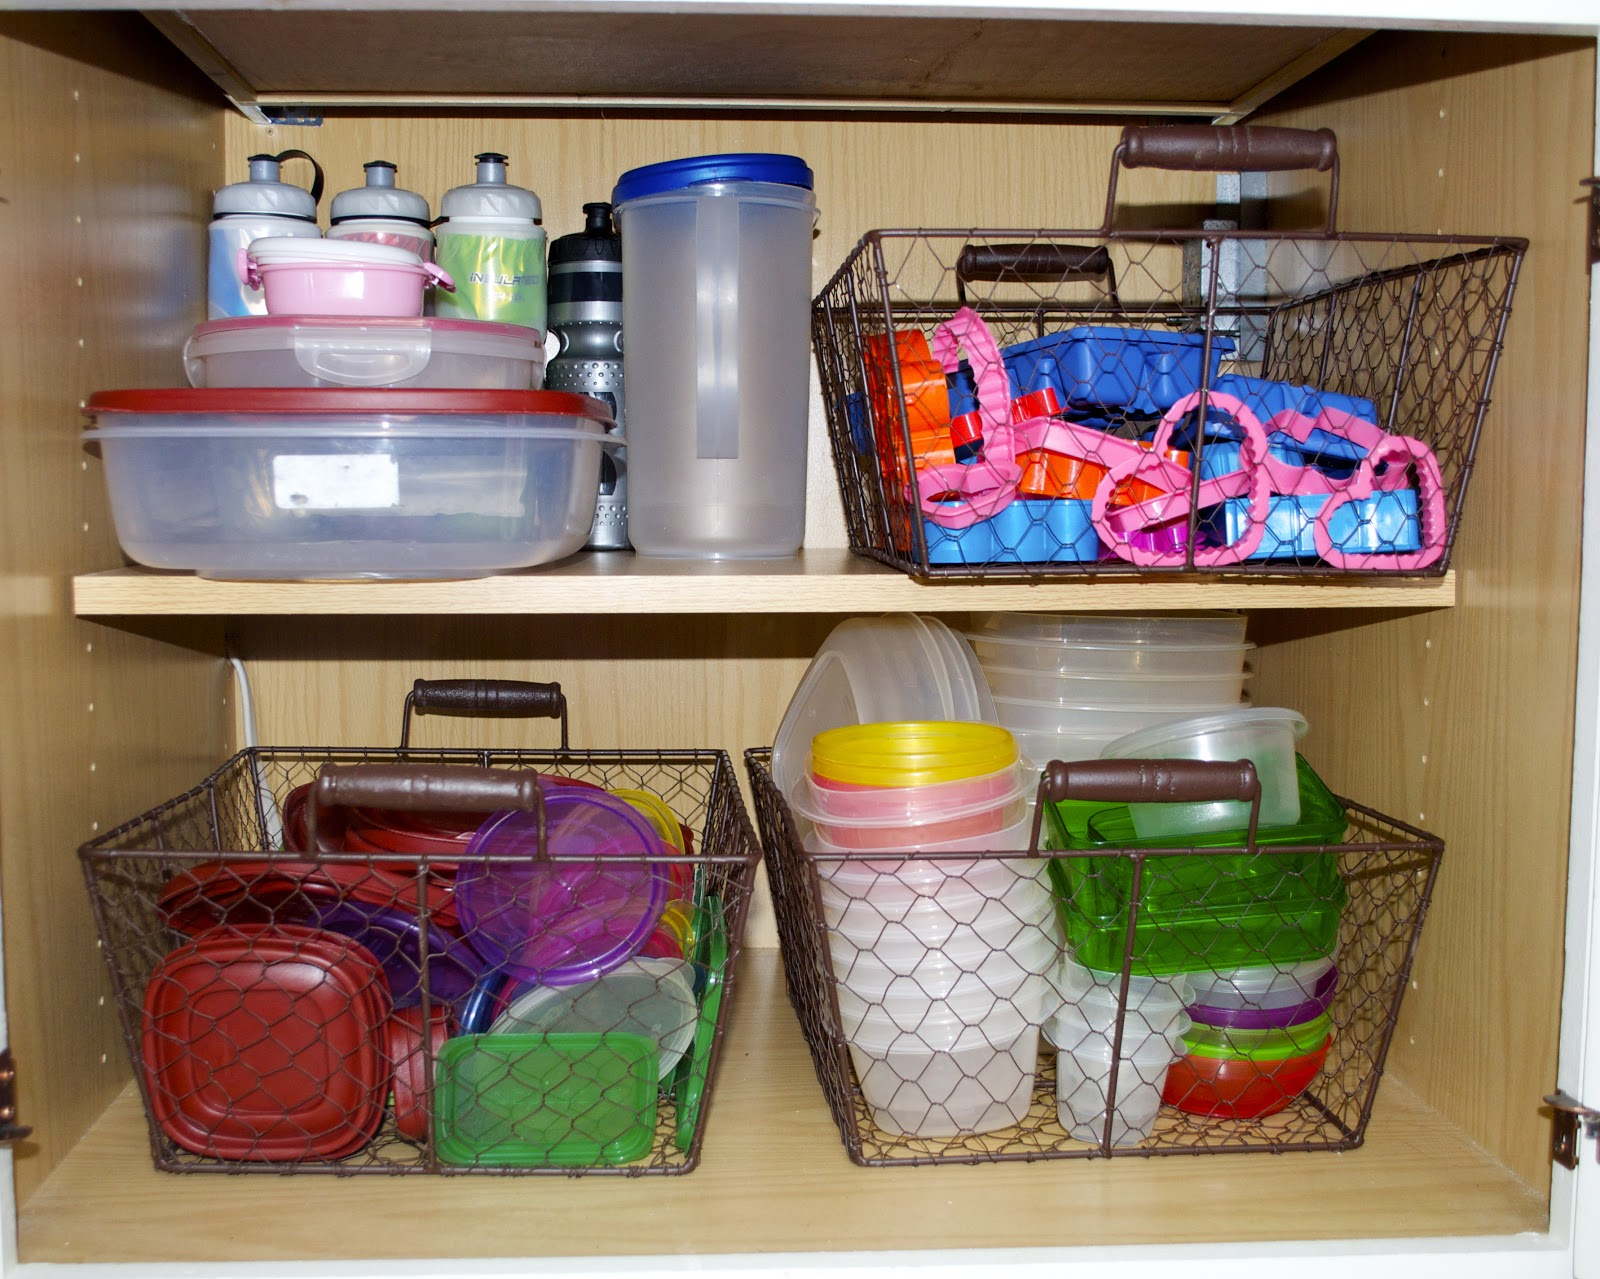 home-organization-1600x1279-adventures-in-tullyland-home-organization-tupperware-cabinet-urumix.com.jpg